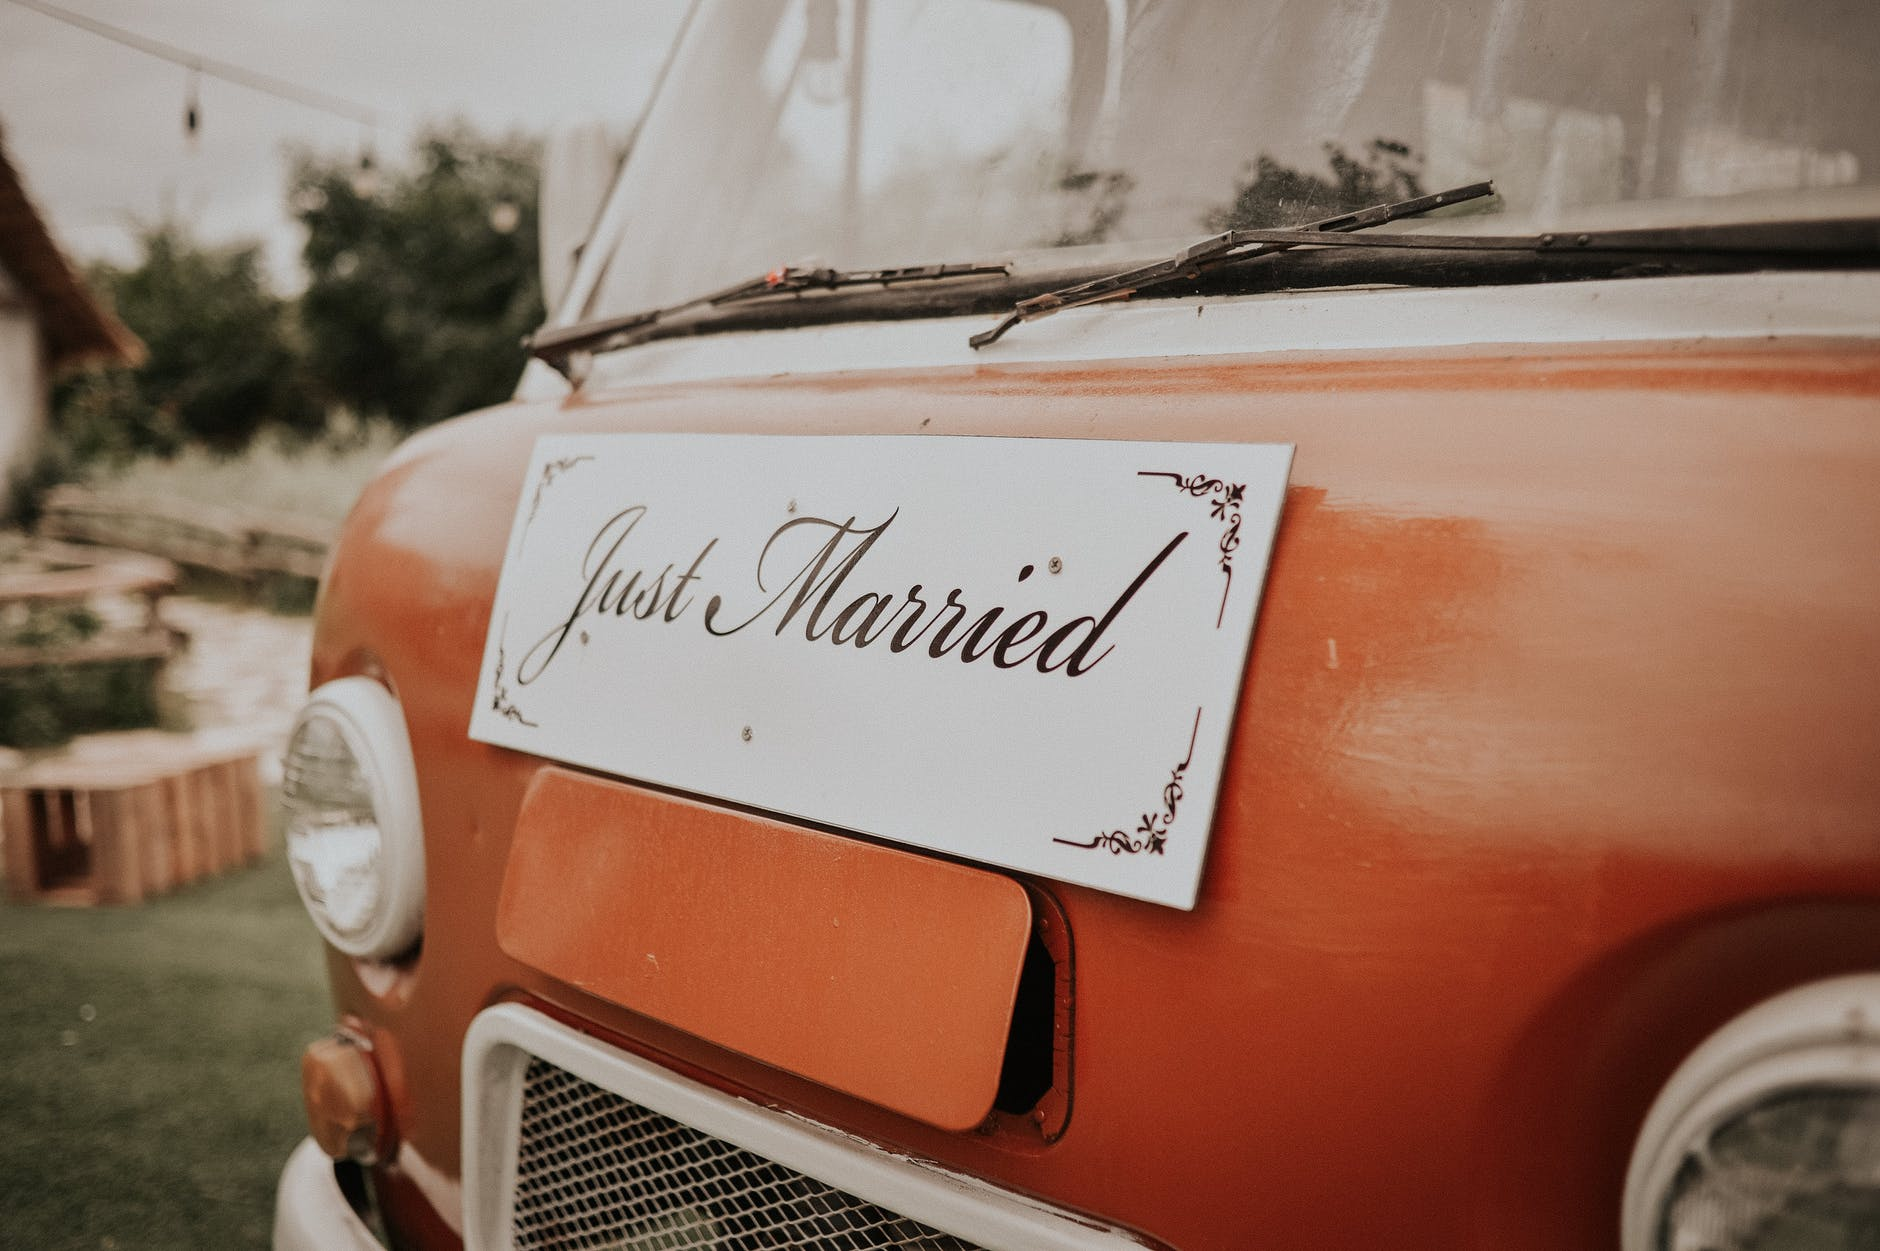 just married plank board in front of red van